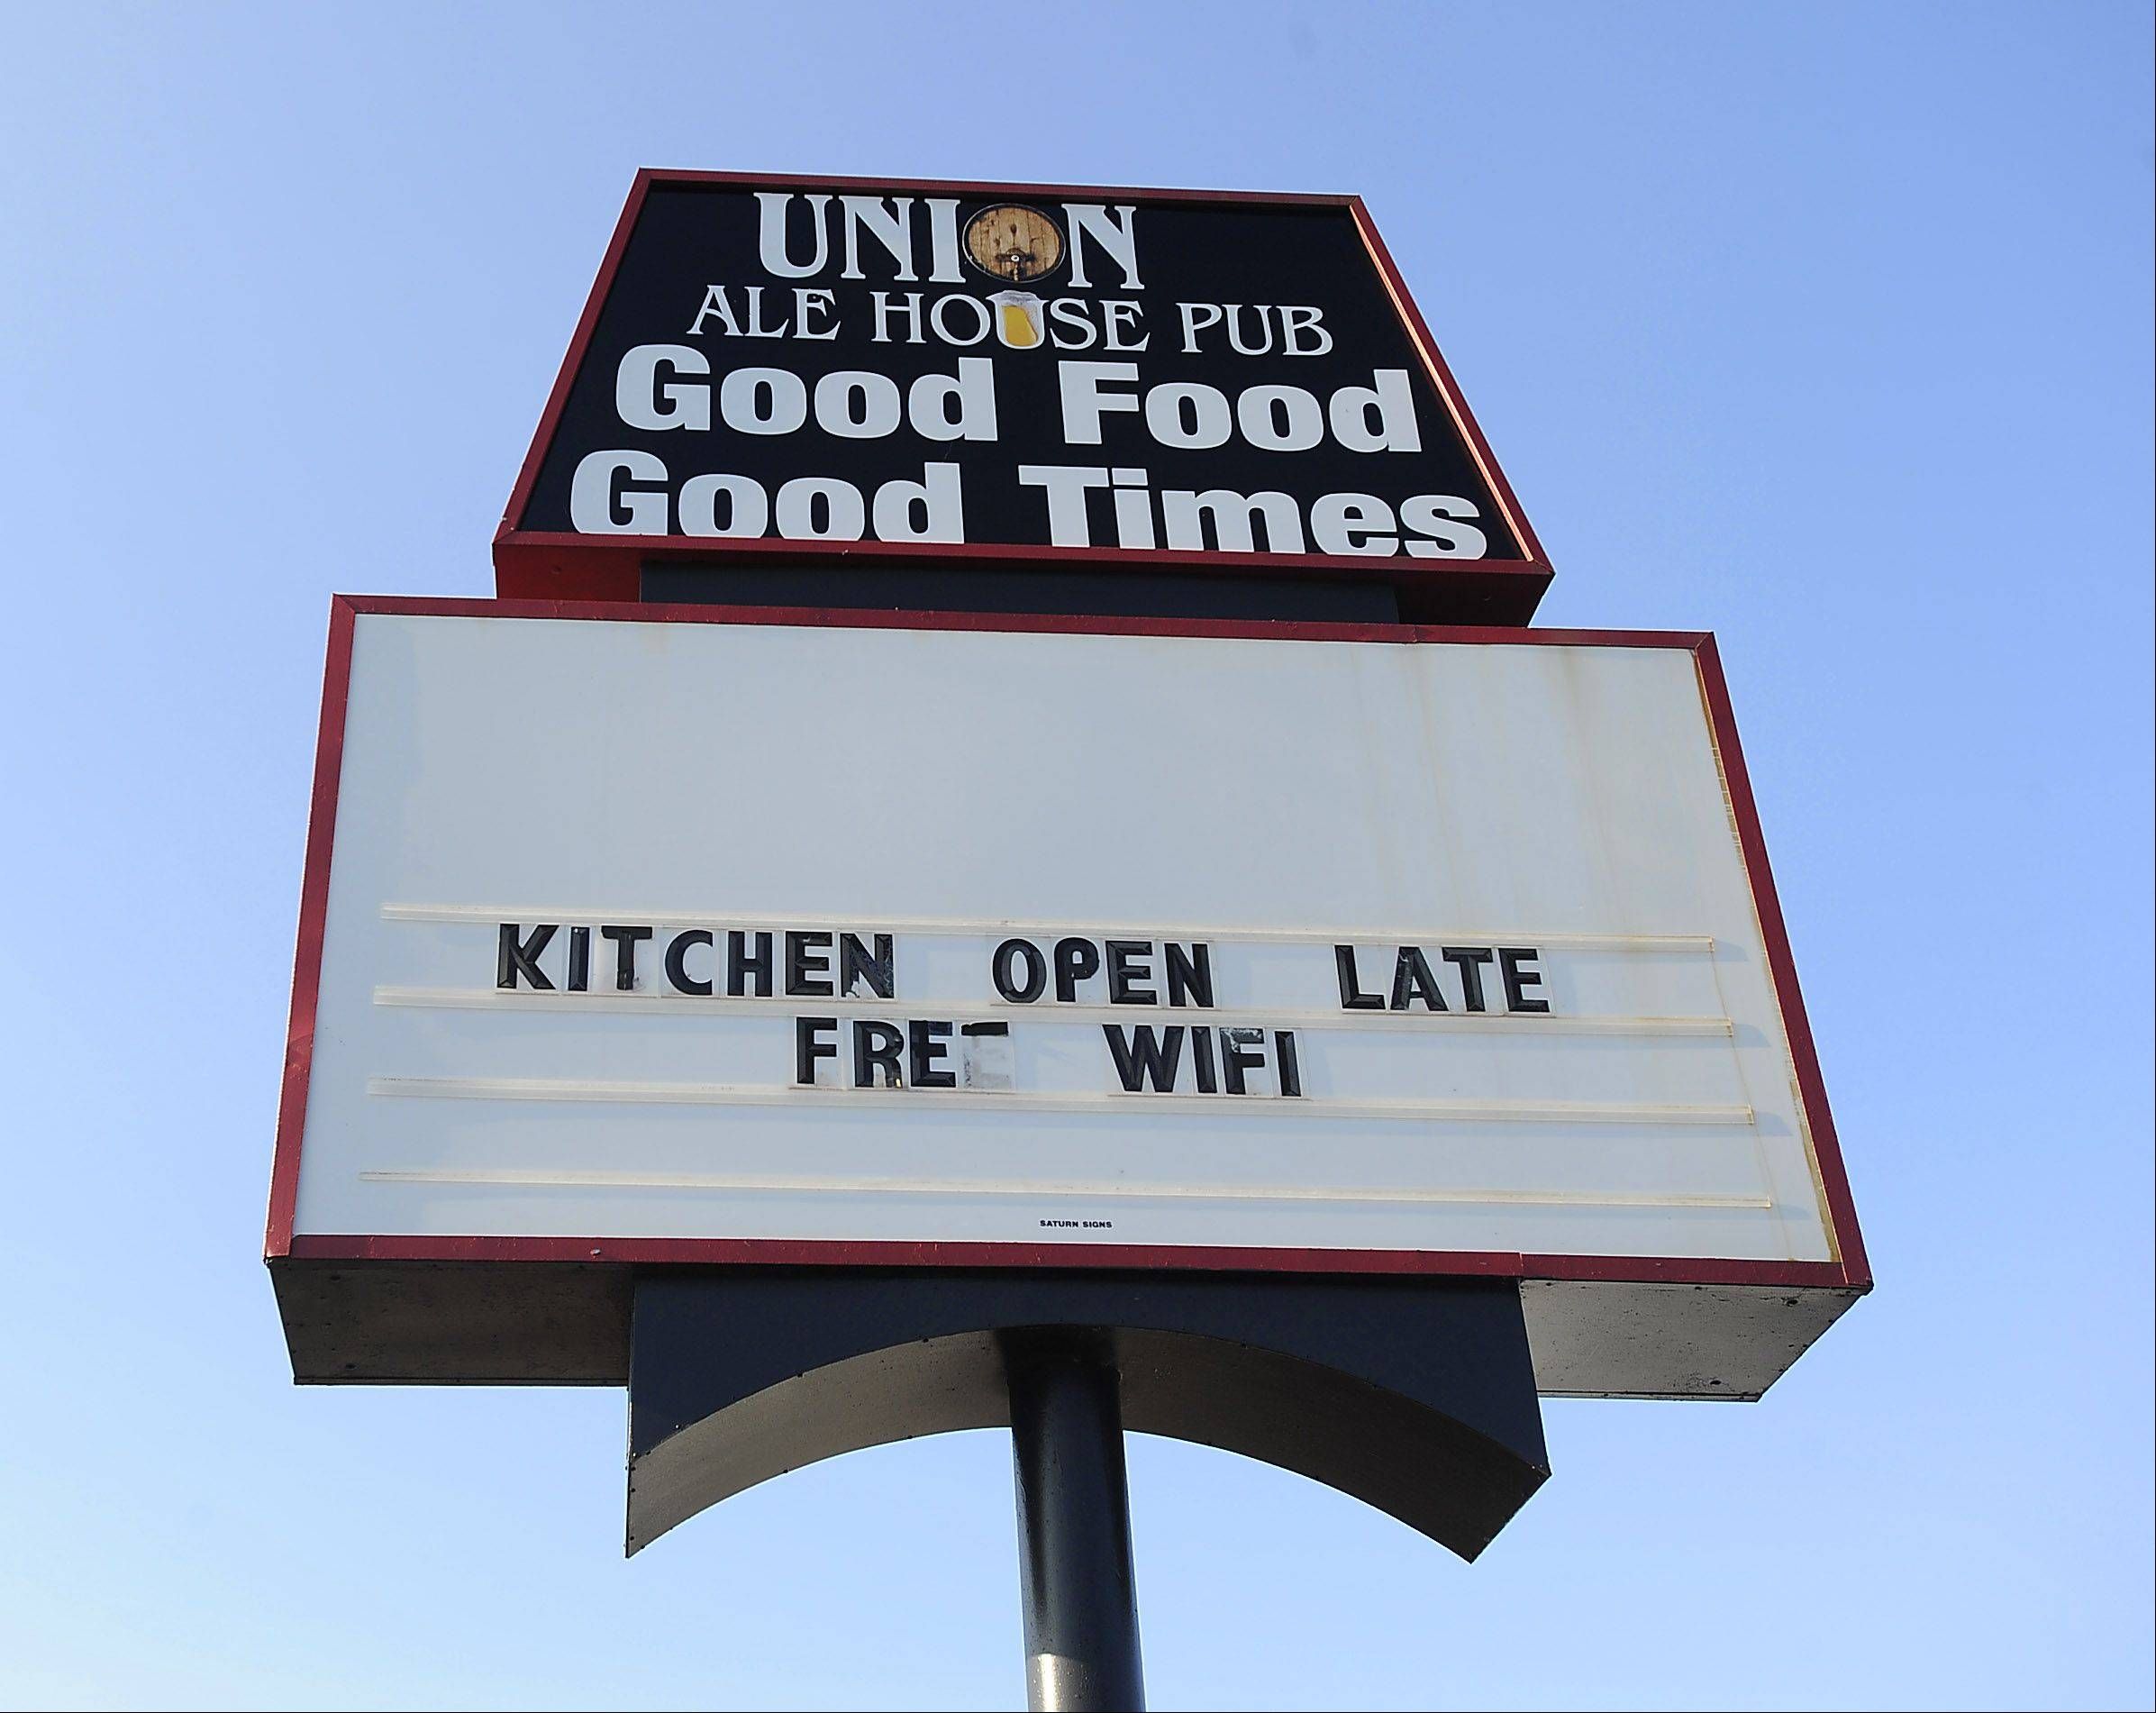 Union Ale House welcomes customers in for good food and drinks.